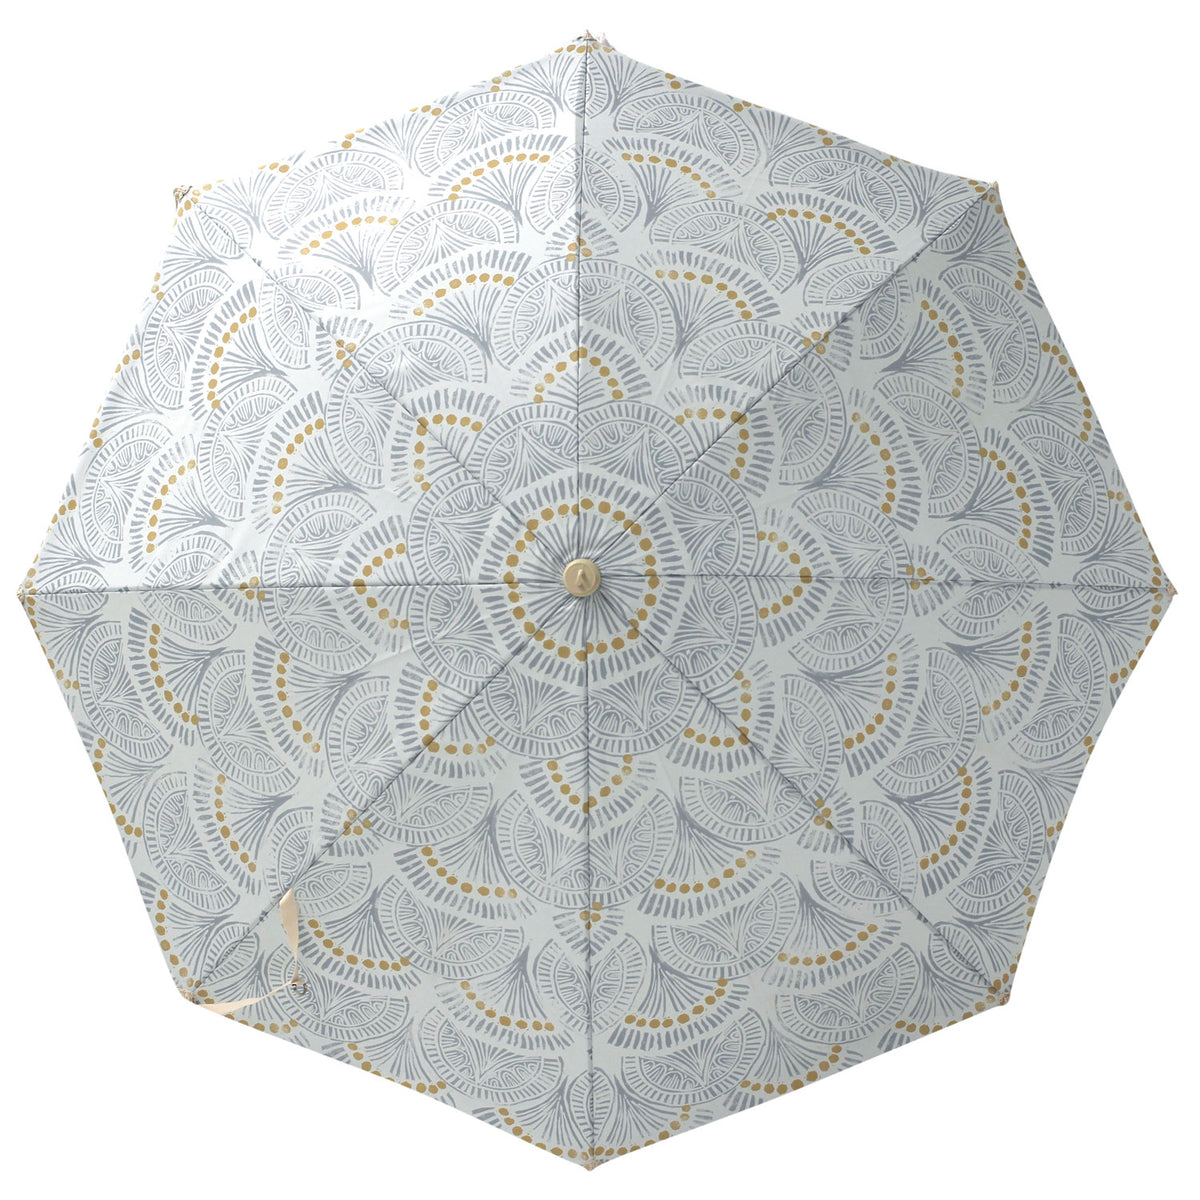 Slate Block Print Premium Beach Umbrella